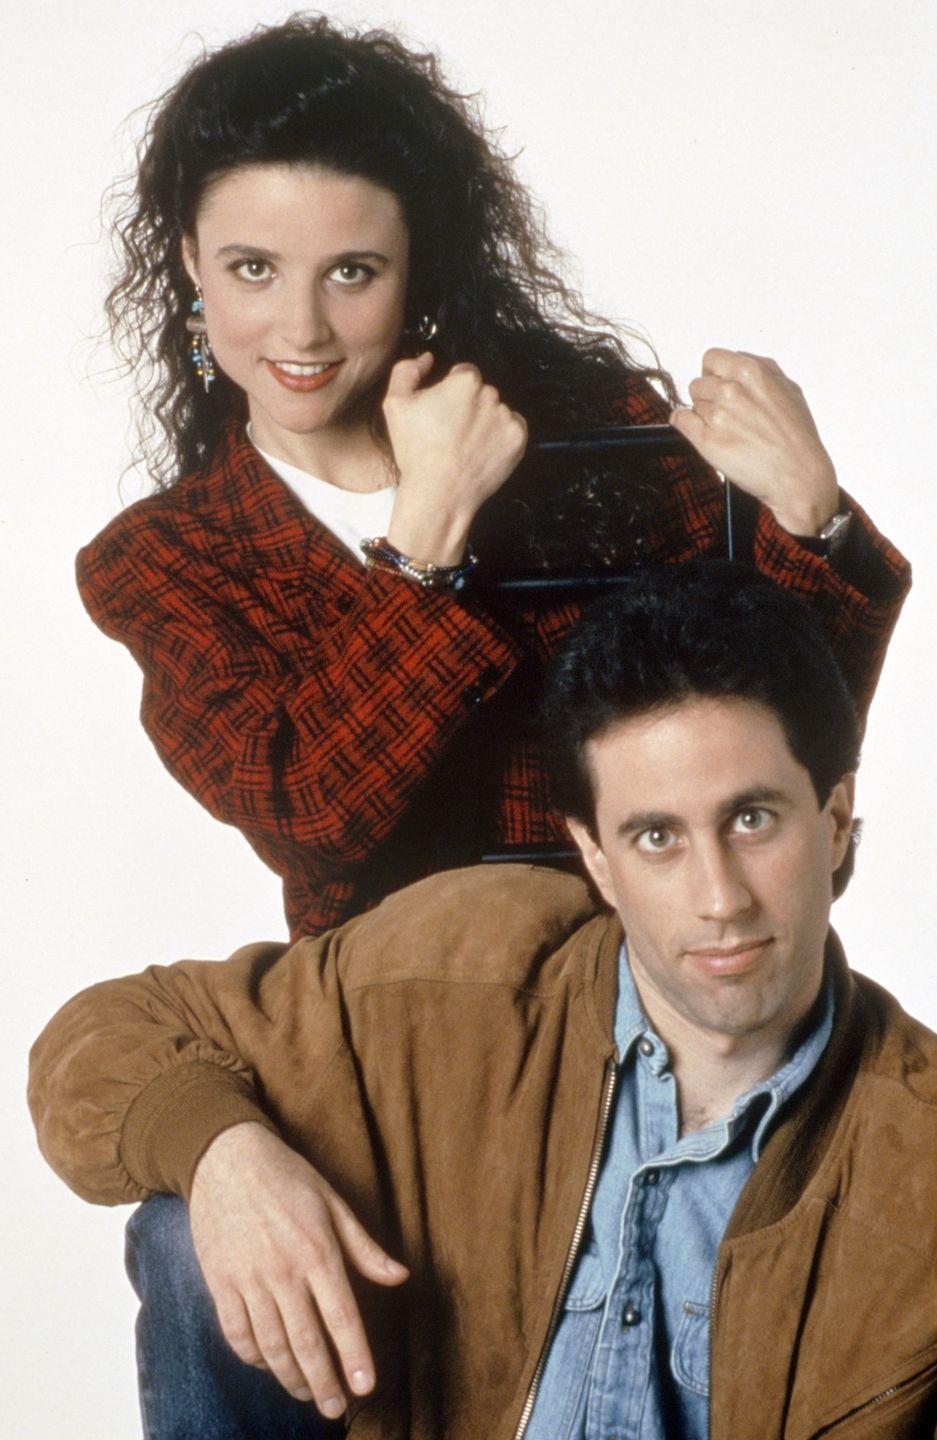 <p>Seinfeld wasn't the only comedian in the cast. Julia Louis-Dreyfus got her start as a cast member on <em>Saturday Night Live </em>before moving over to the sitcom. </p>